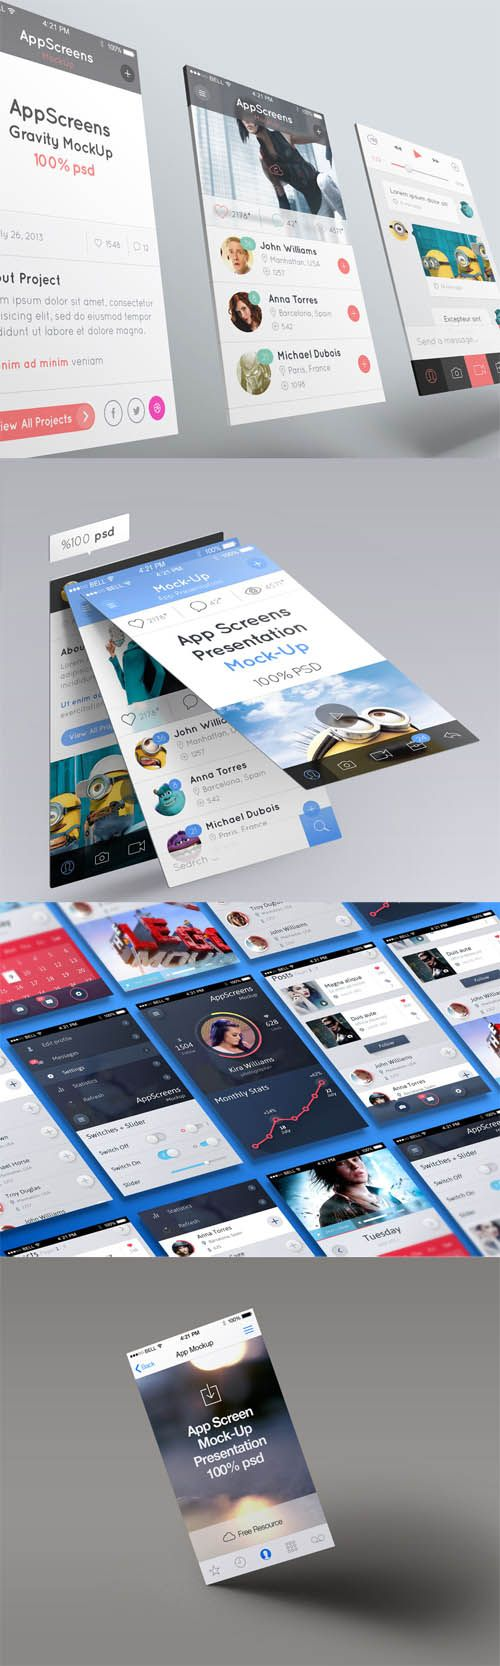 4 App Screen Presentation Mock-up Templates